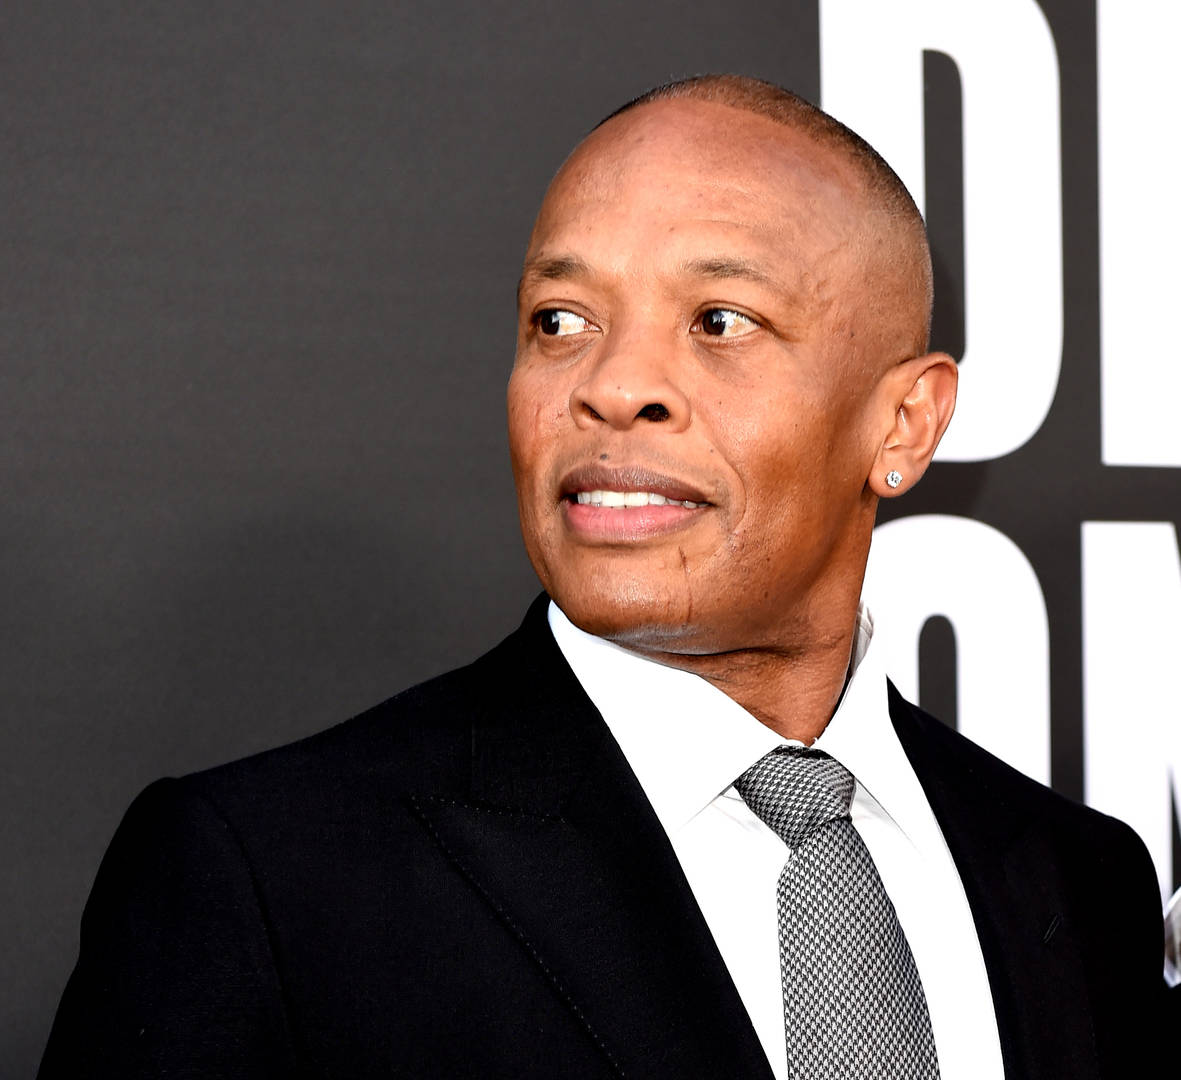 Dr. Dre, Feed Your City, Covid-19